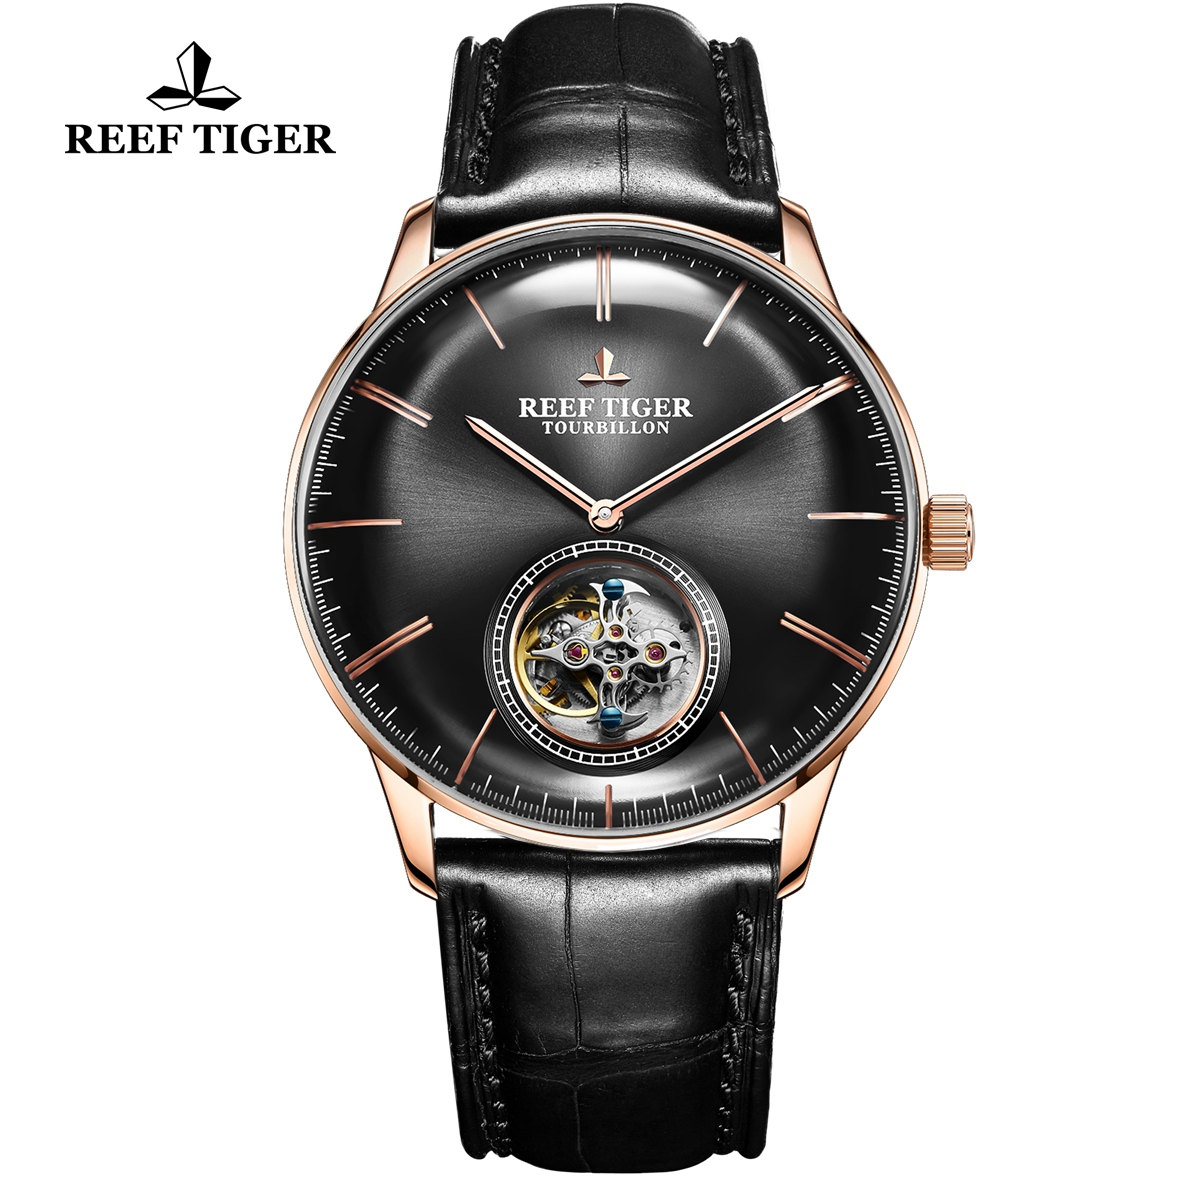 Reef Tiger Seattle Tourbillon Fashion Rose Gold Black Dial Leather Strap Automatic Watch RGA1930-PBB